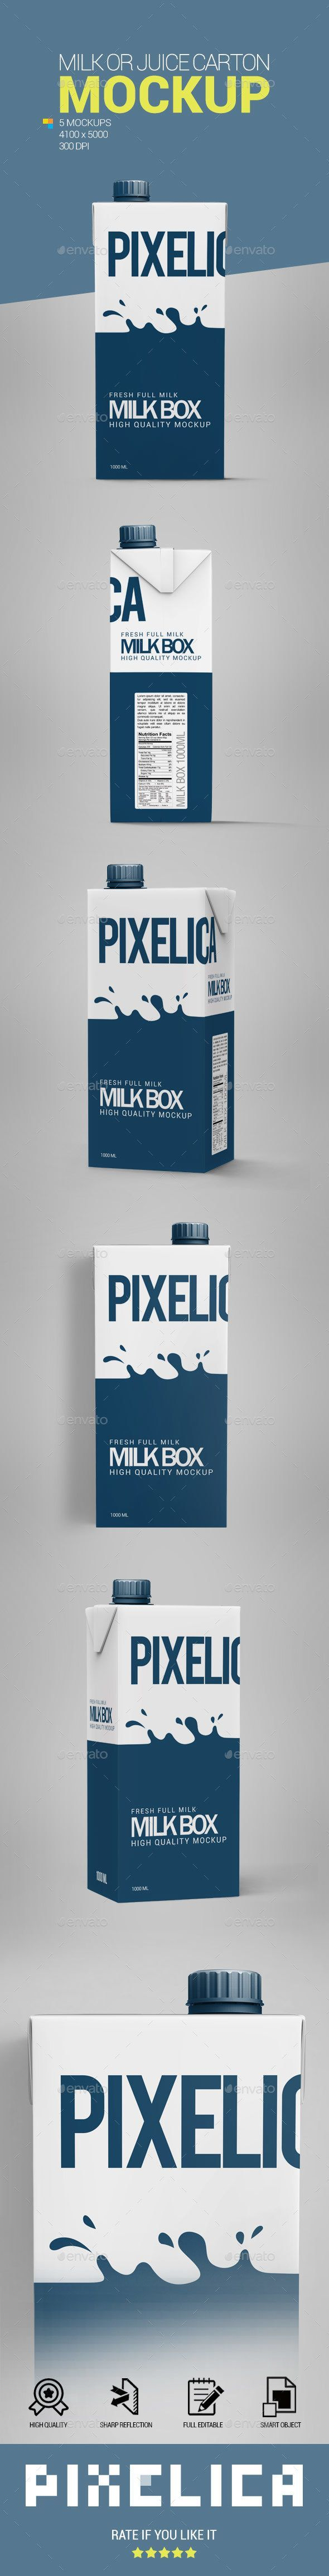 Milk or Juice Carton Mockup - Food and Drink Packaging  Download link: graphicri... -